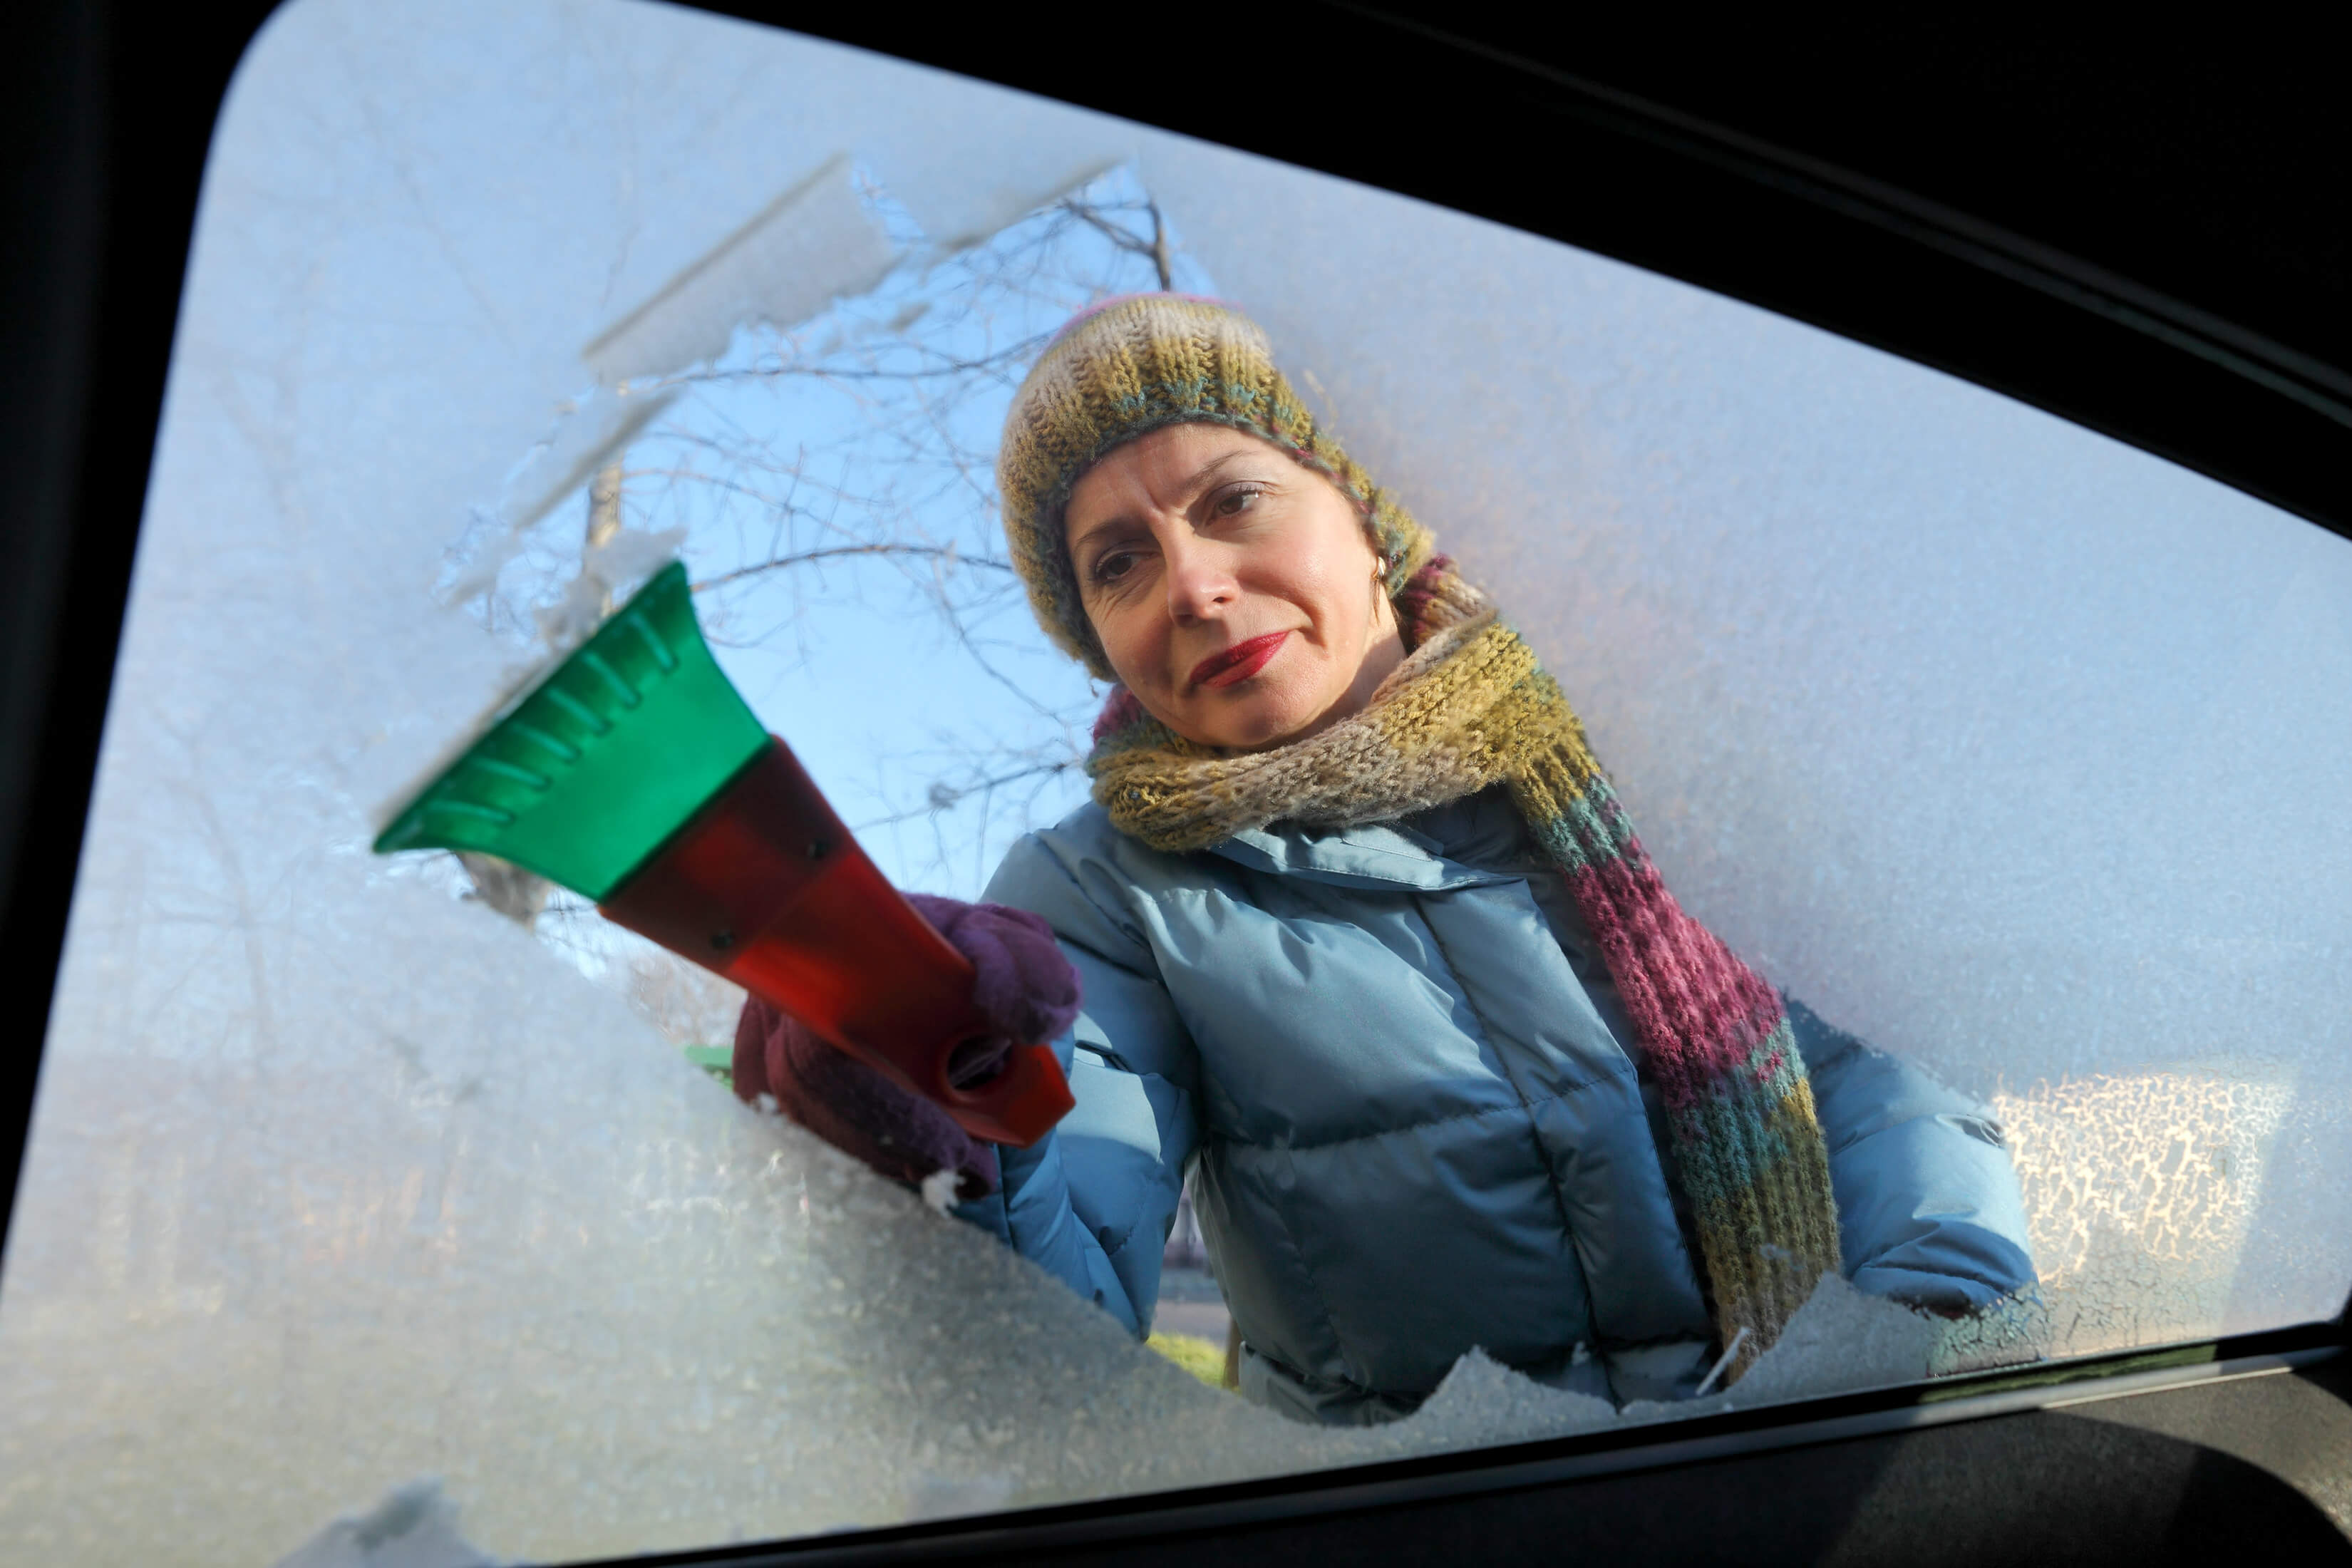 Snow simple: The best way to defrost or demist a car's windows